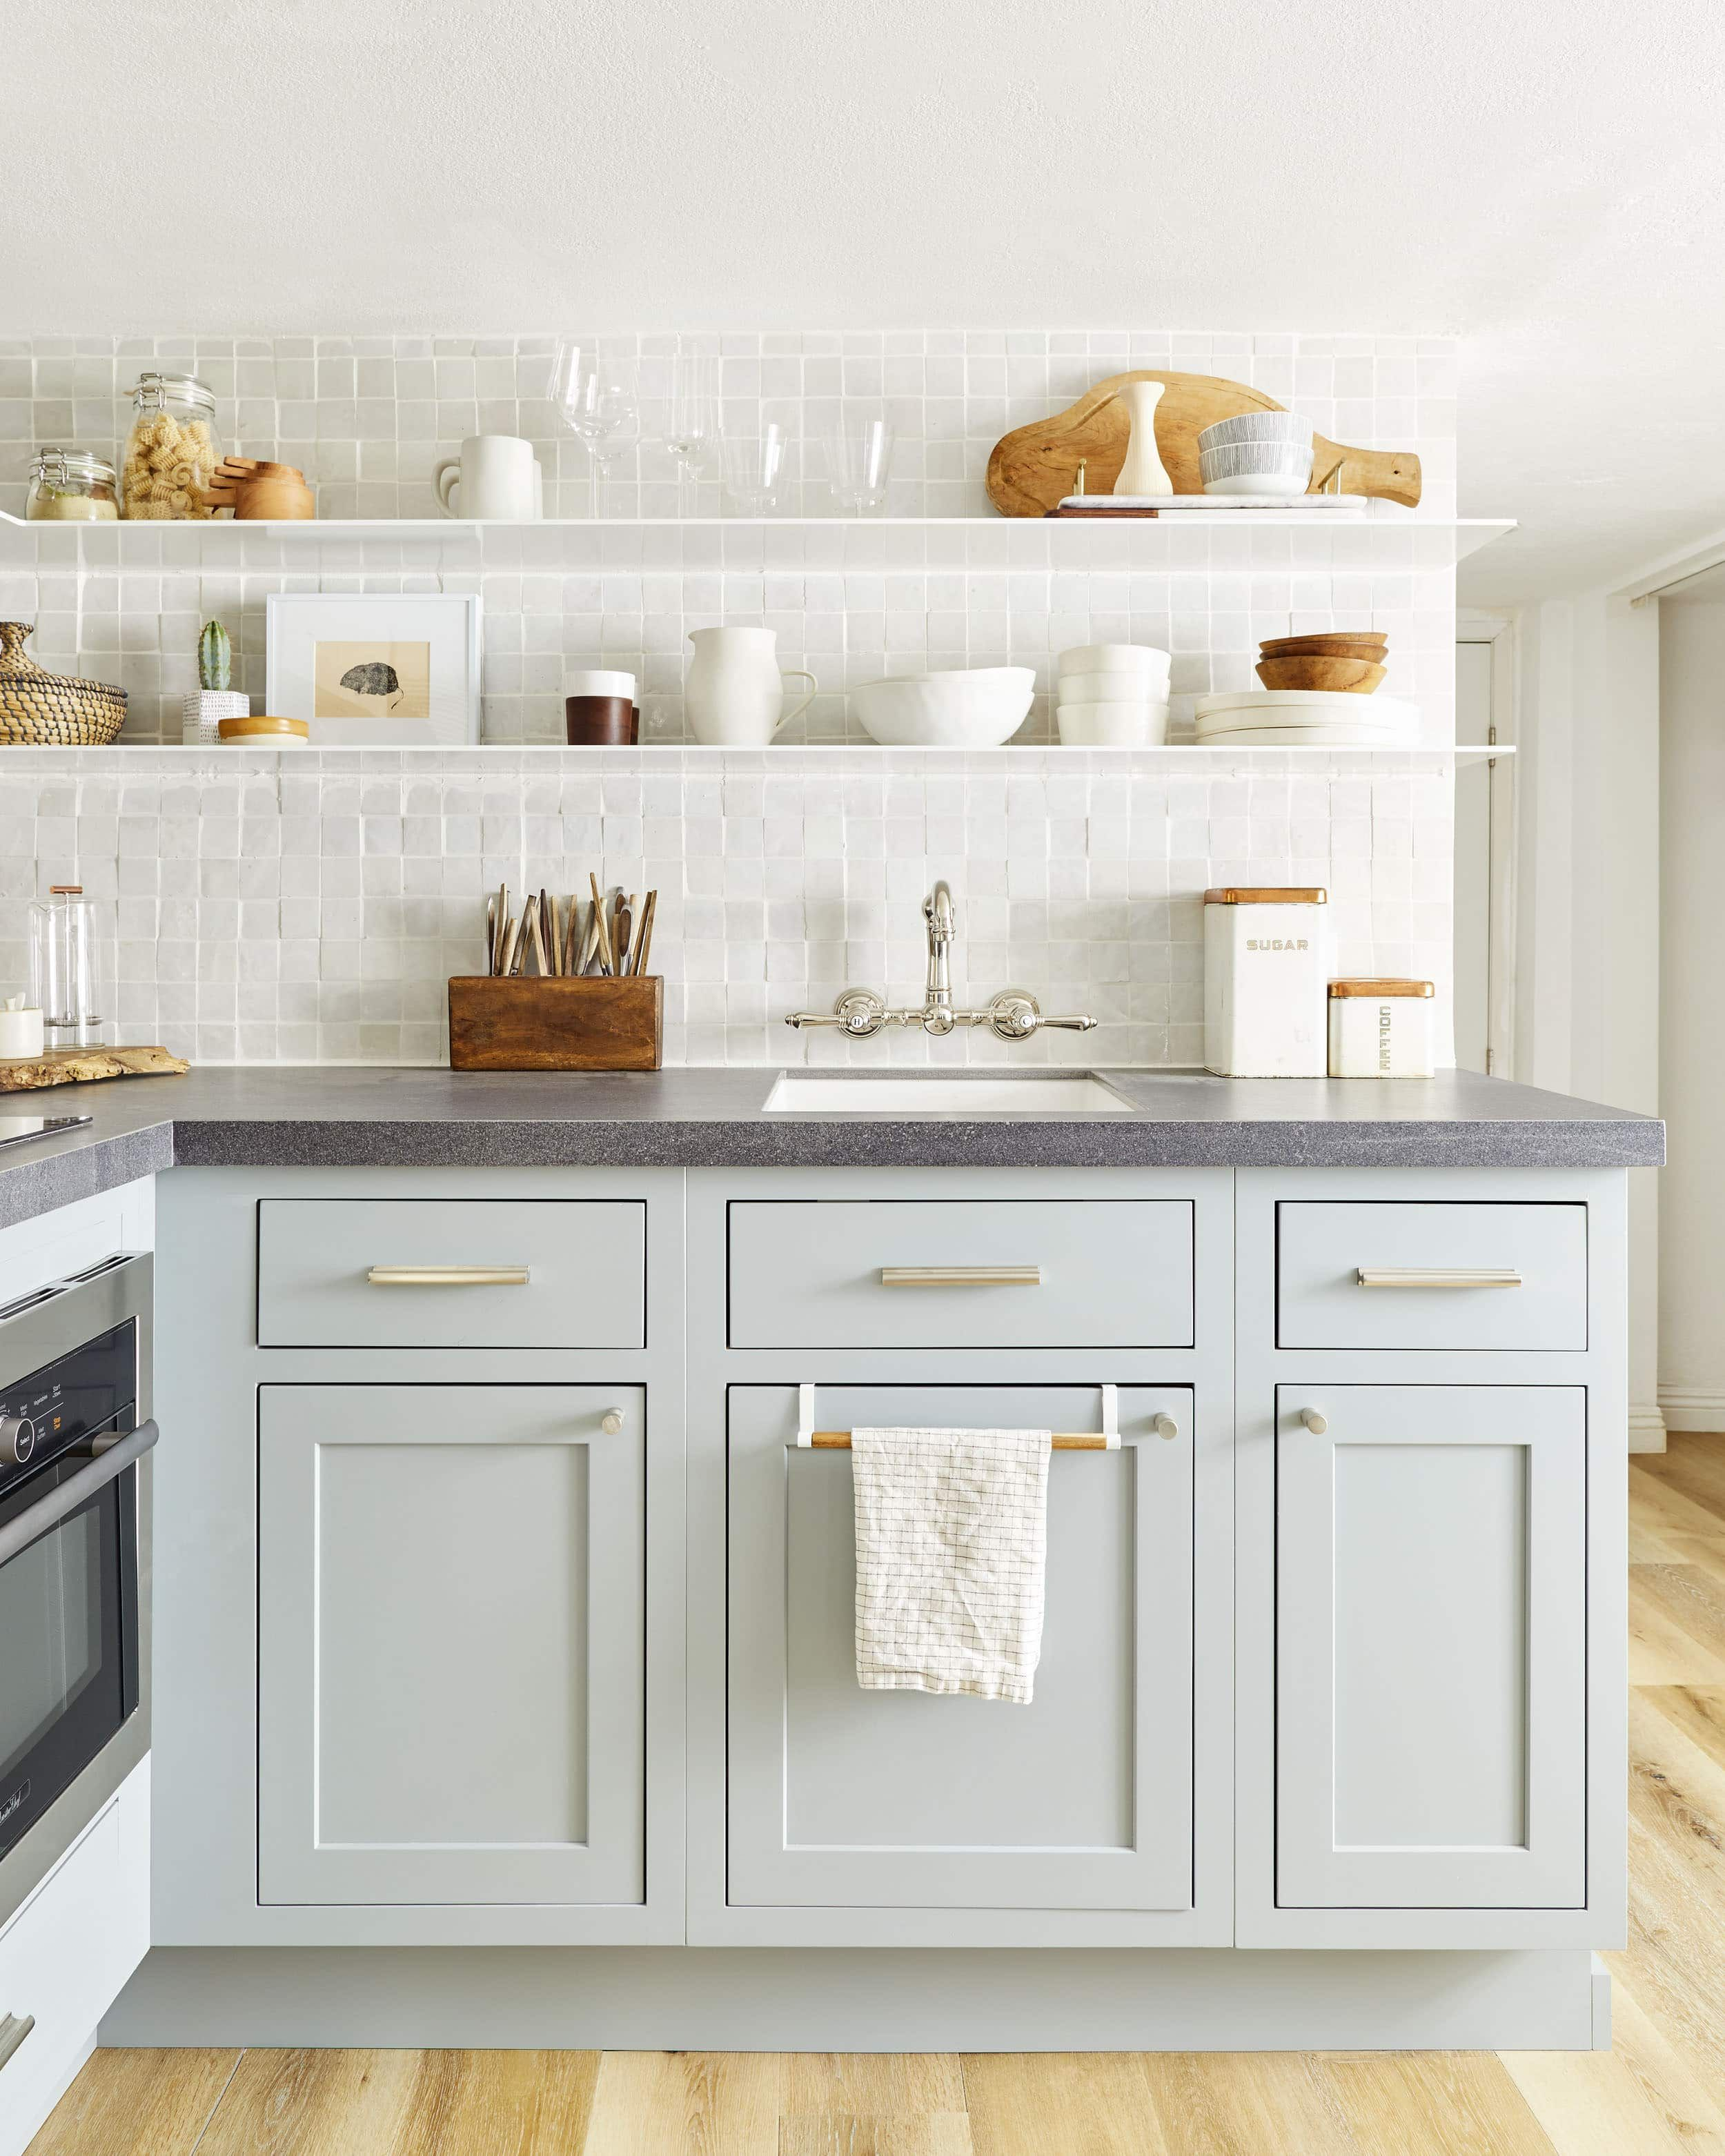 60 Of Our Favorite Budget Friendly Cabinet Hardware Picks Kitchen Renovation Cost Green Kitchen Cabinets Kitchen Cabinet Colors